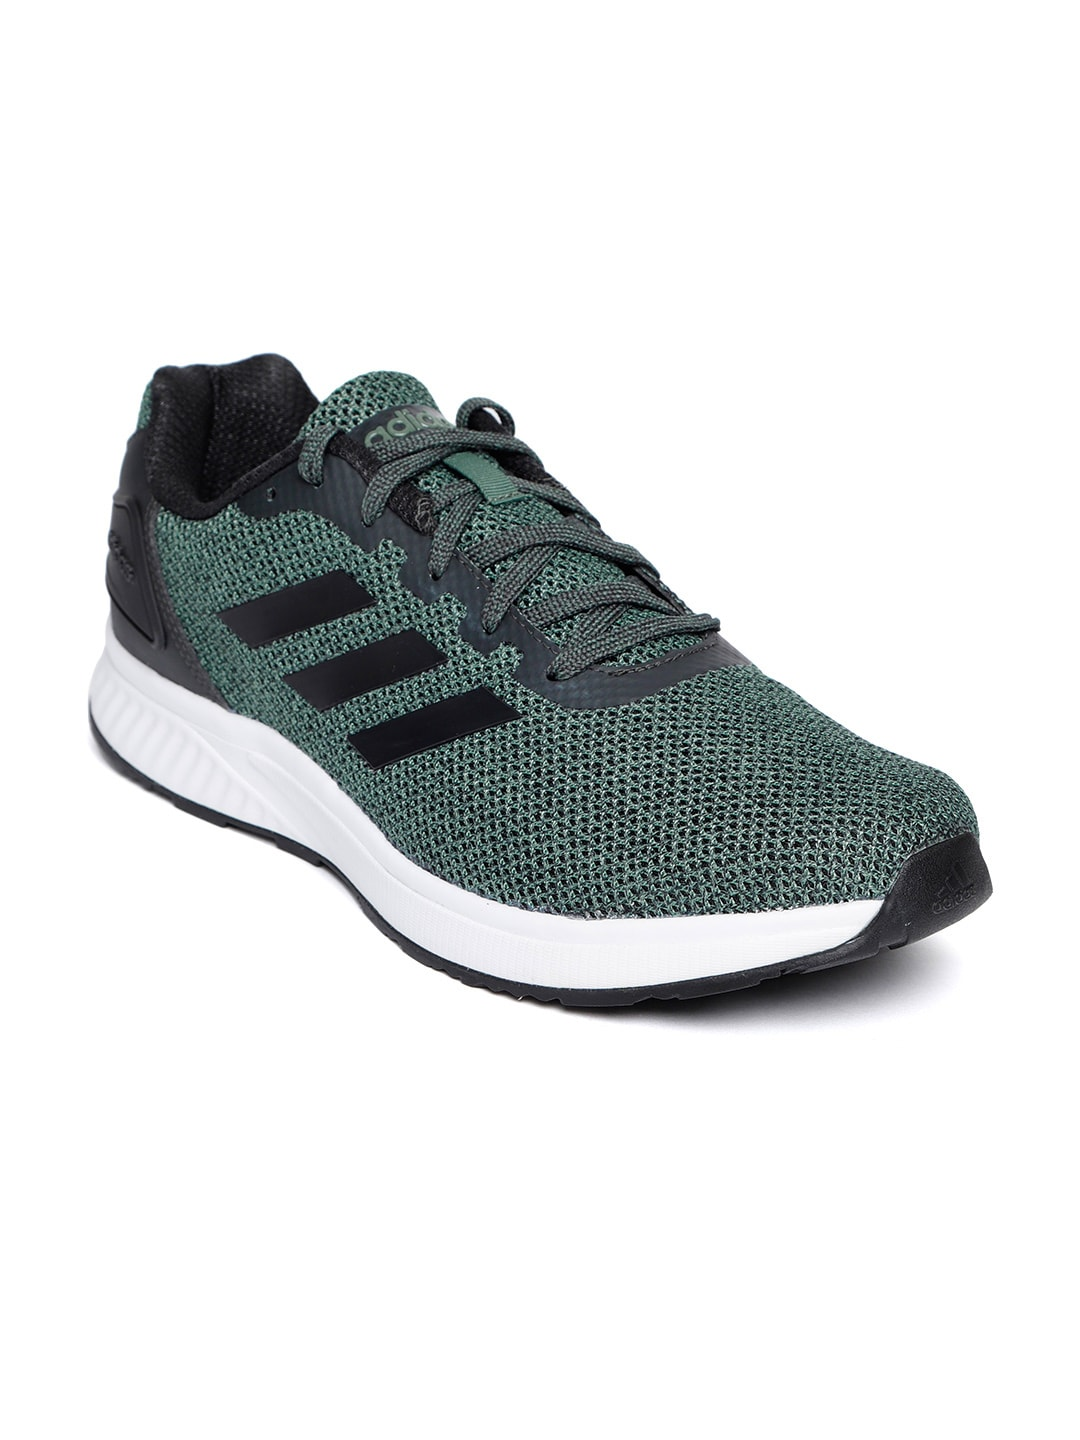 Buy Charcoal Adidas Shoes Sports Men 6842194 Running For 3Rj4L5A